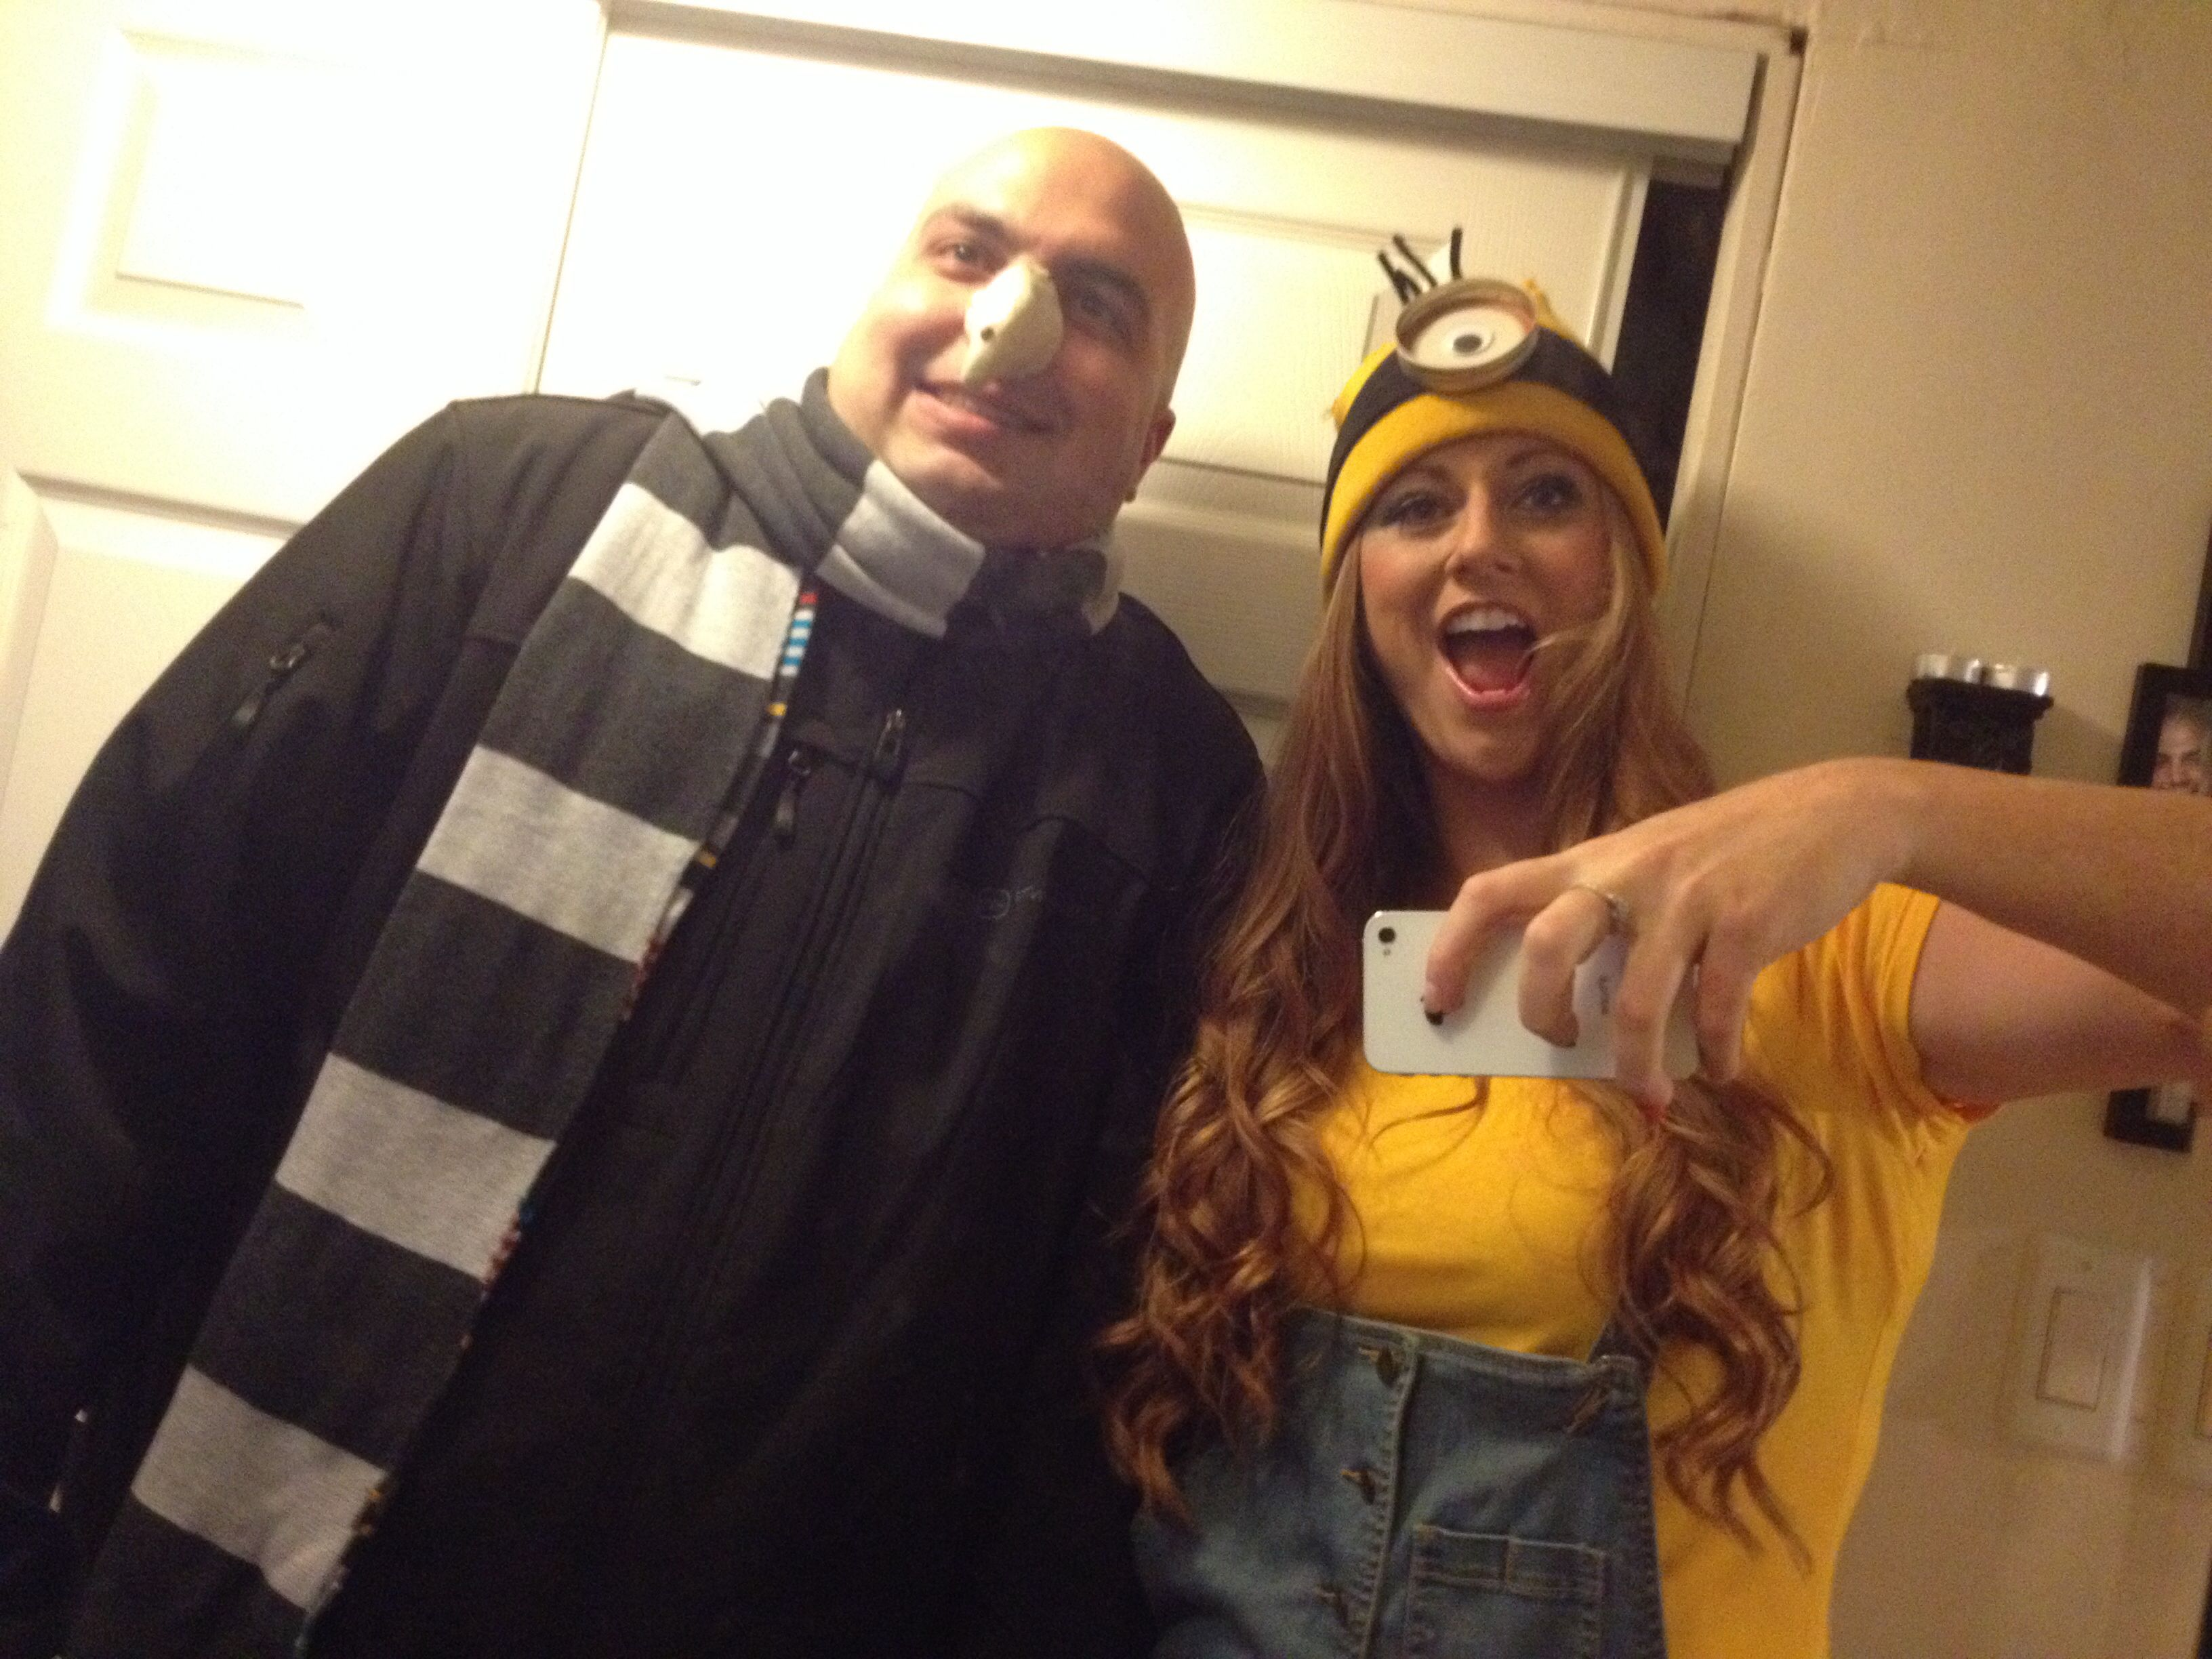 29 best gru despicable me costume images on pinterest | gru